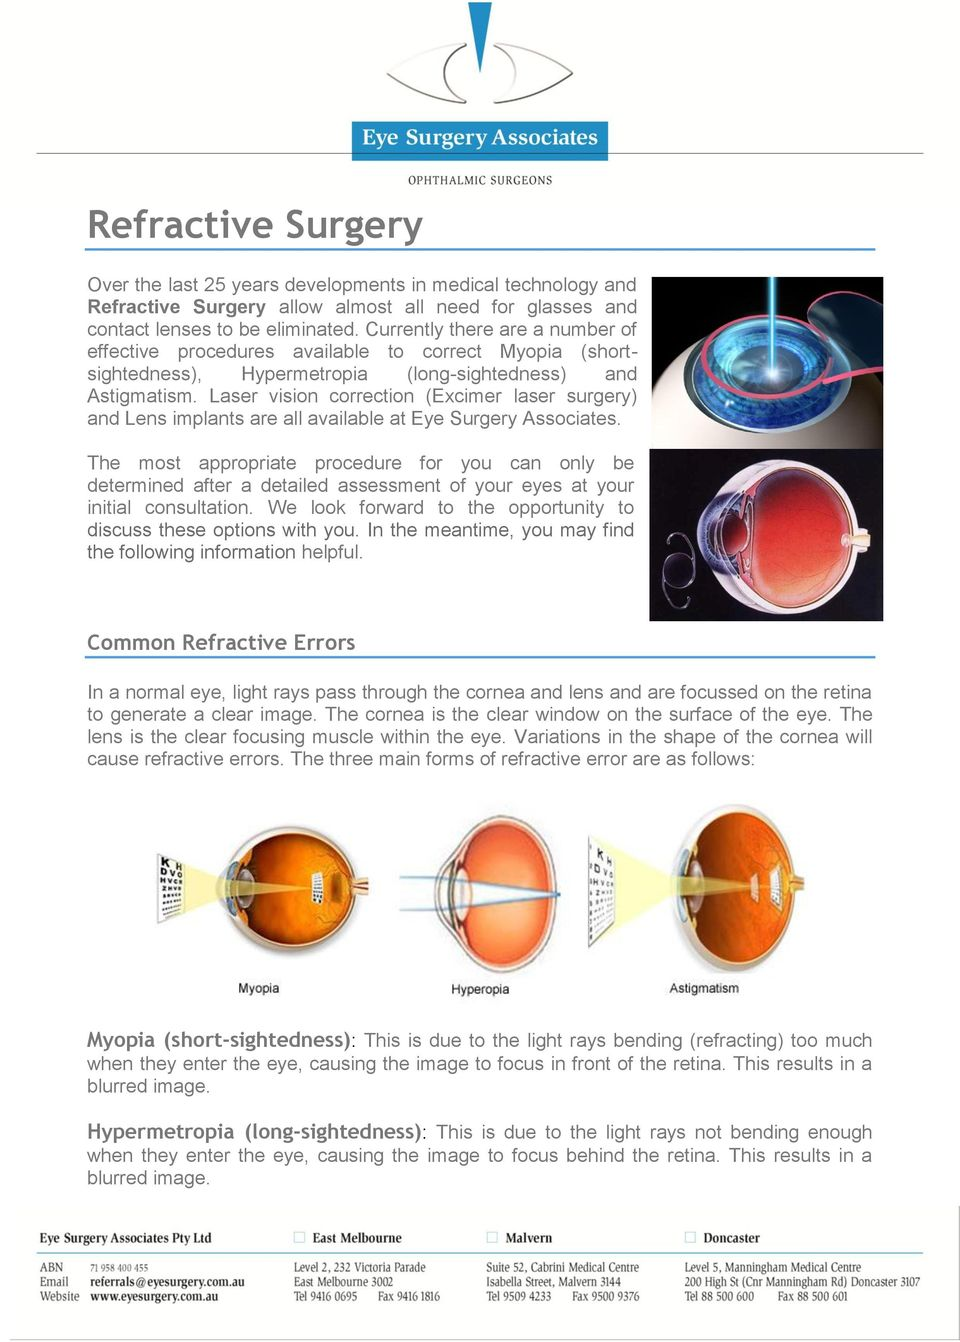 Laser vision correction (Excimer laser surgery) and Lens implants are all available at Eye Surgery Associates.